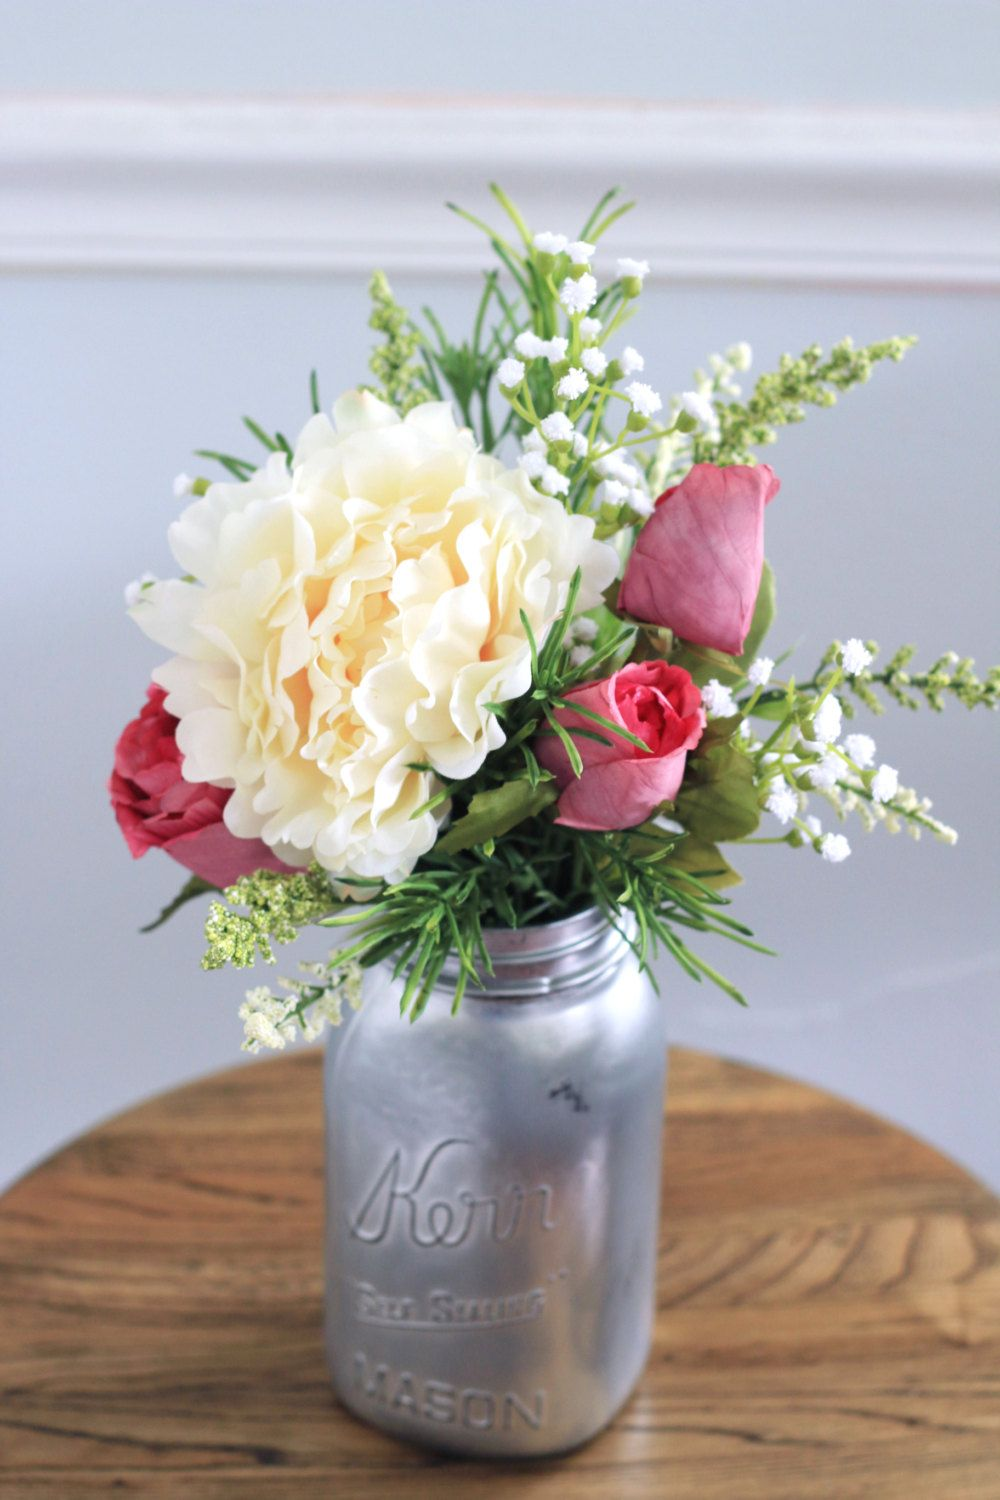 Magenta Roses, White Peony Bouquet, Faux Flowers, Vase Arrangement in Distressed Silver Jar by MarmaladeFloral on Etsy